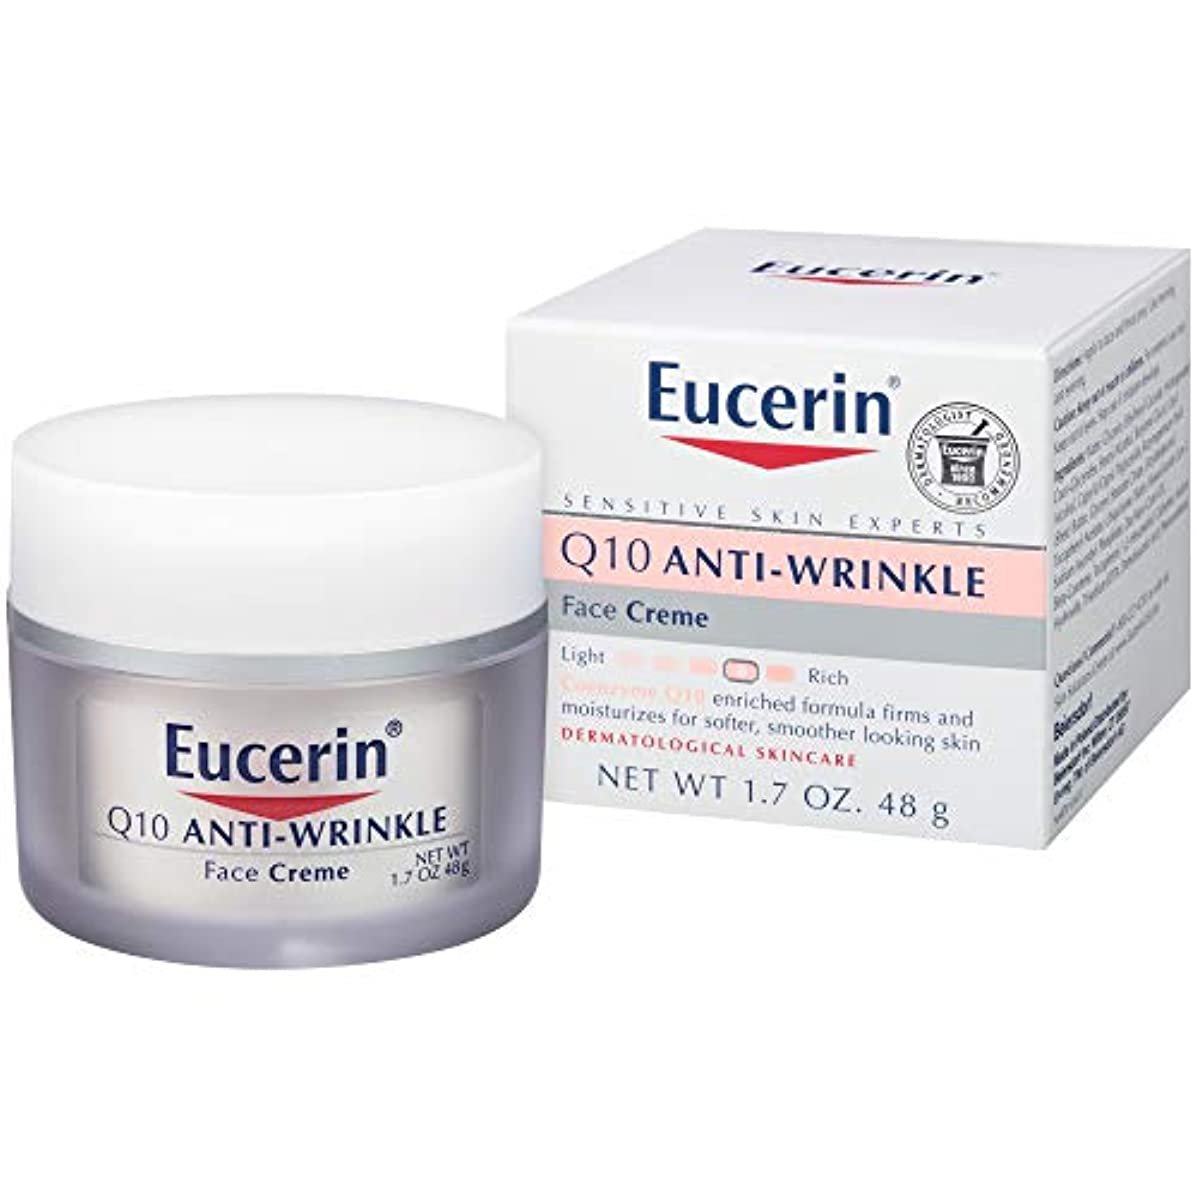 全体磁石不安Eucerin Sensitive Facial Skin Q10 Anti-Wrinkle Sensitive Skin Creme 48g (並行輸入品)